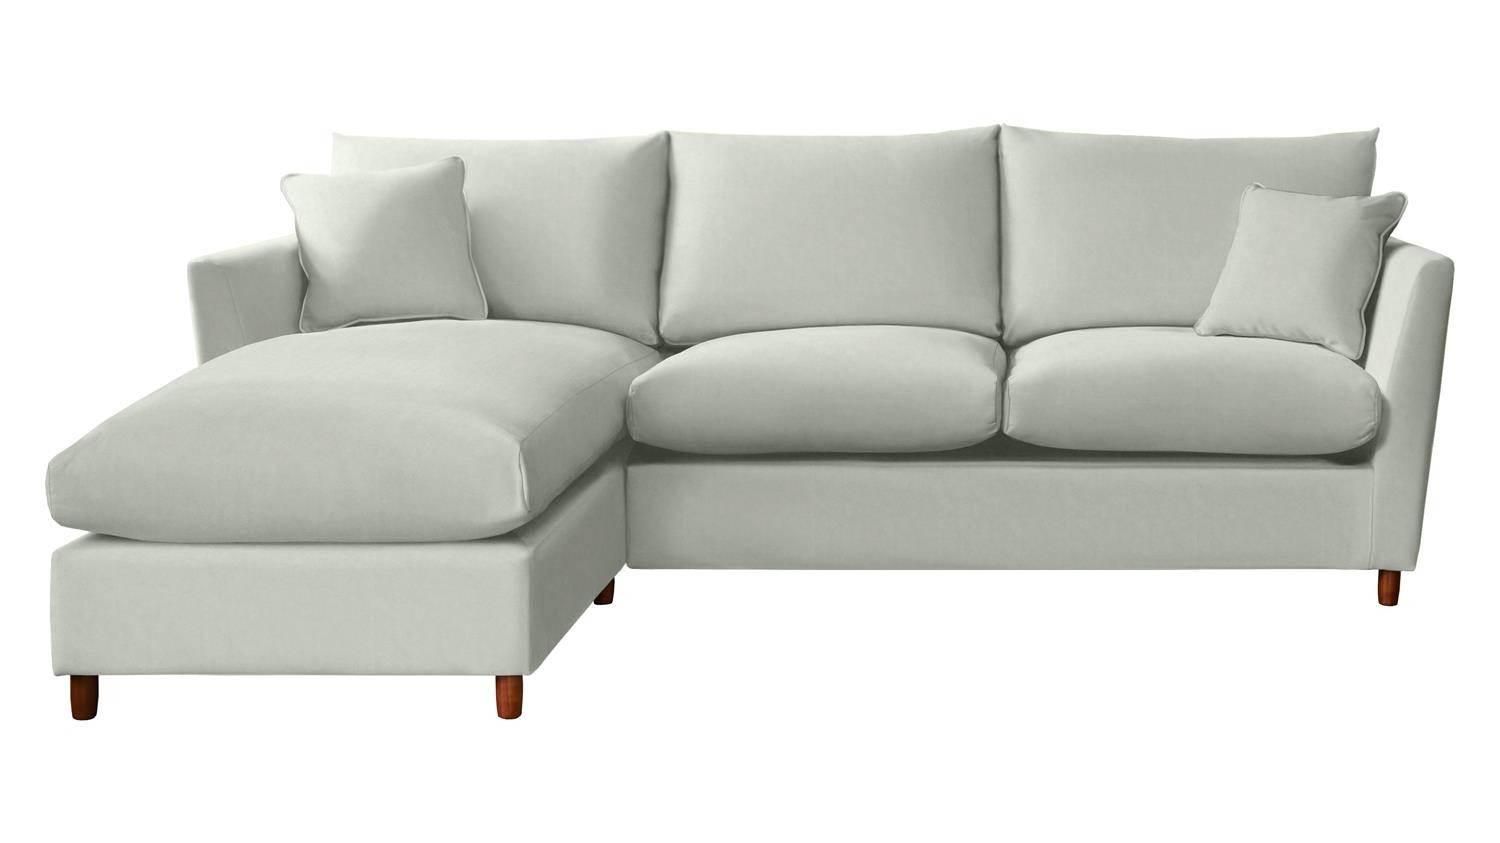 The Ansty 4 Seater Left Chaise Sofa Bed